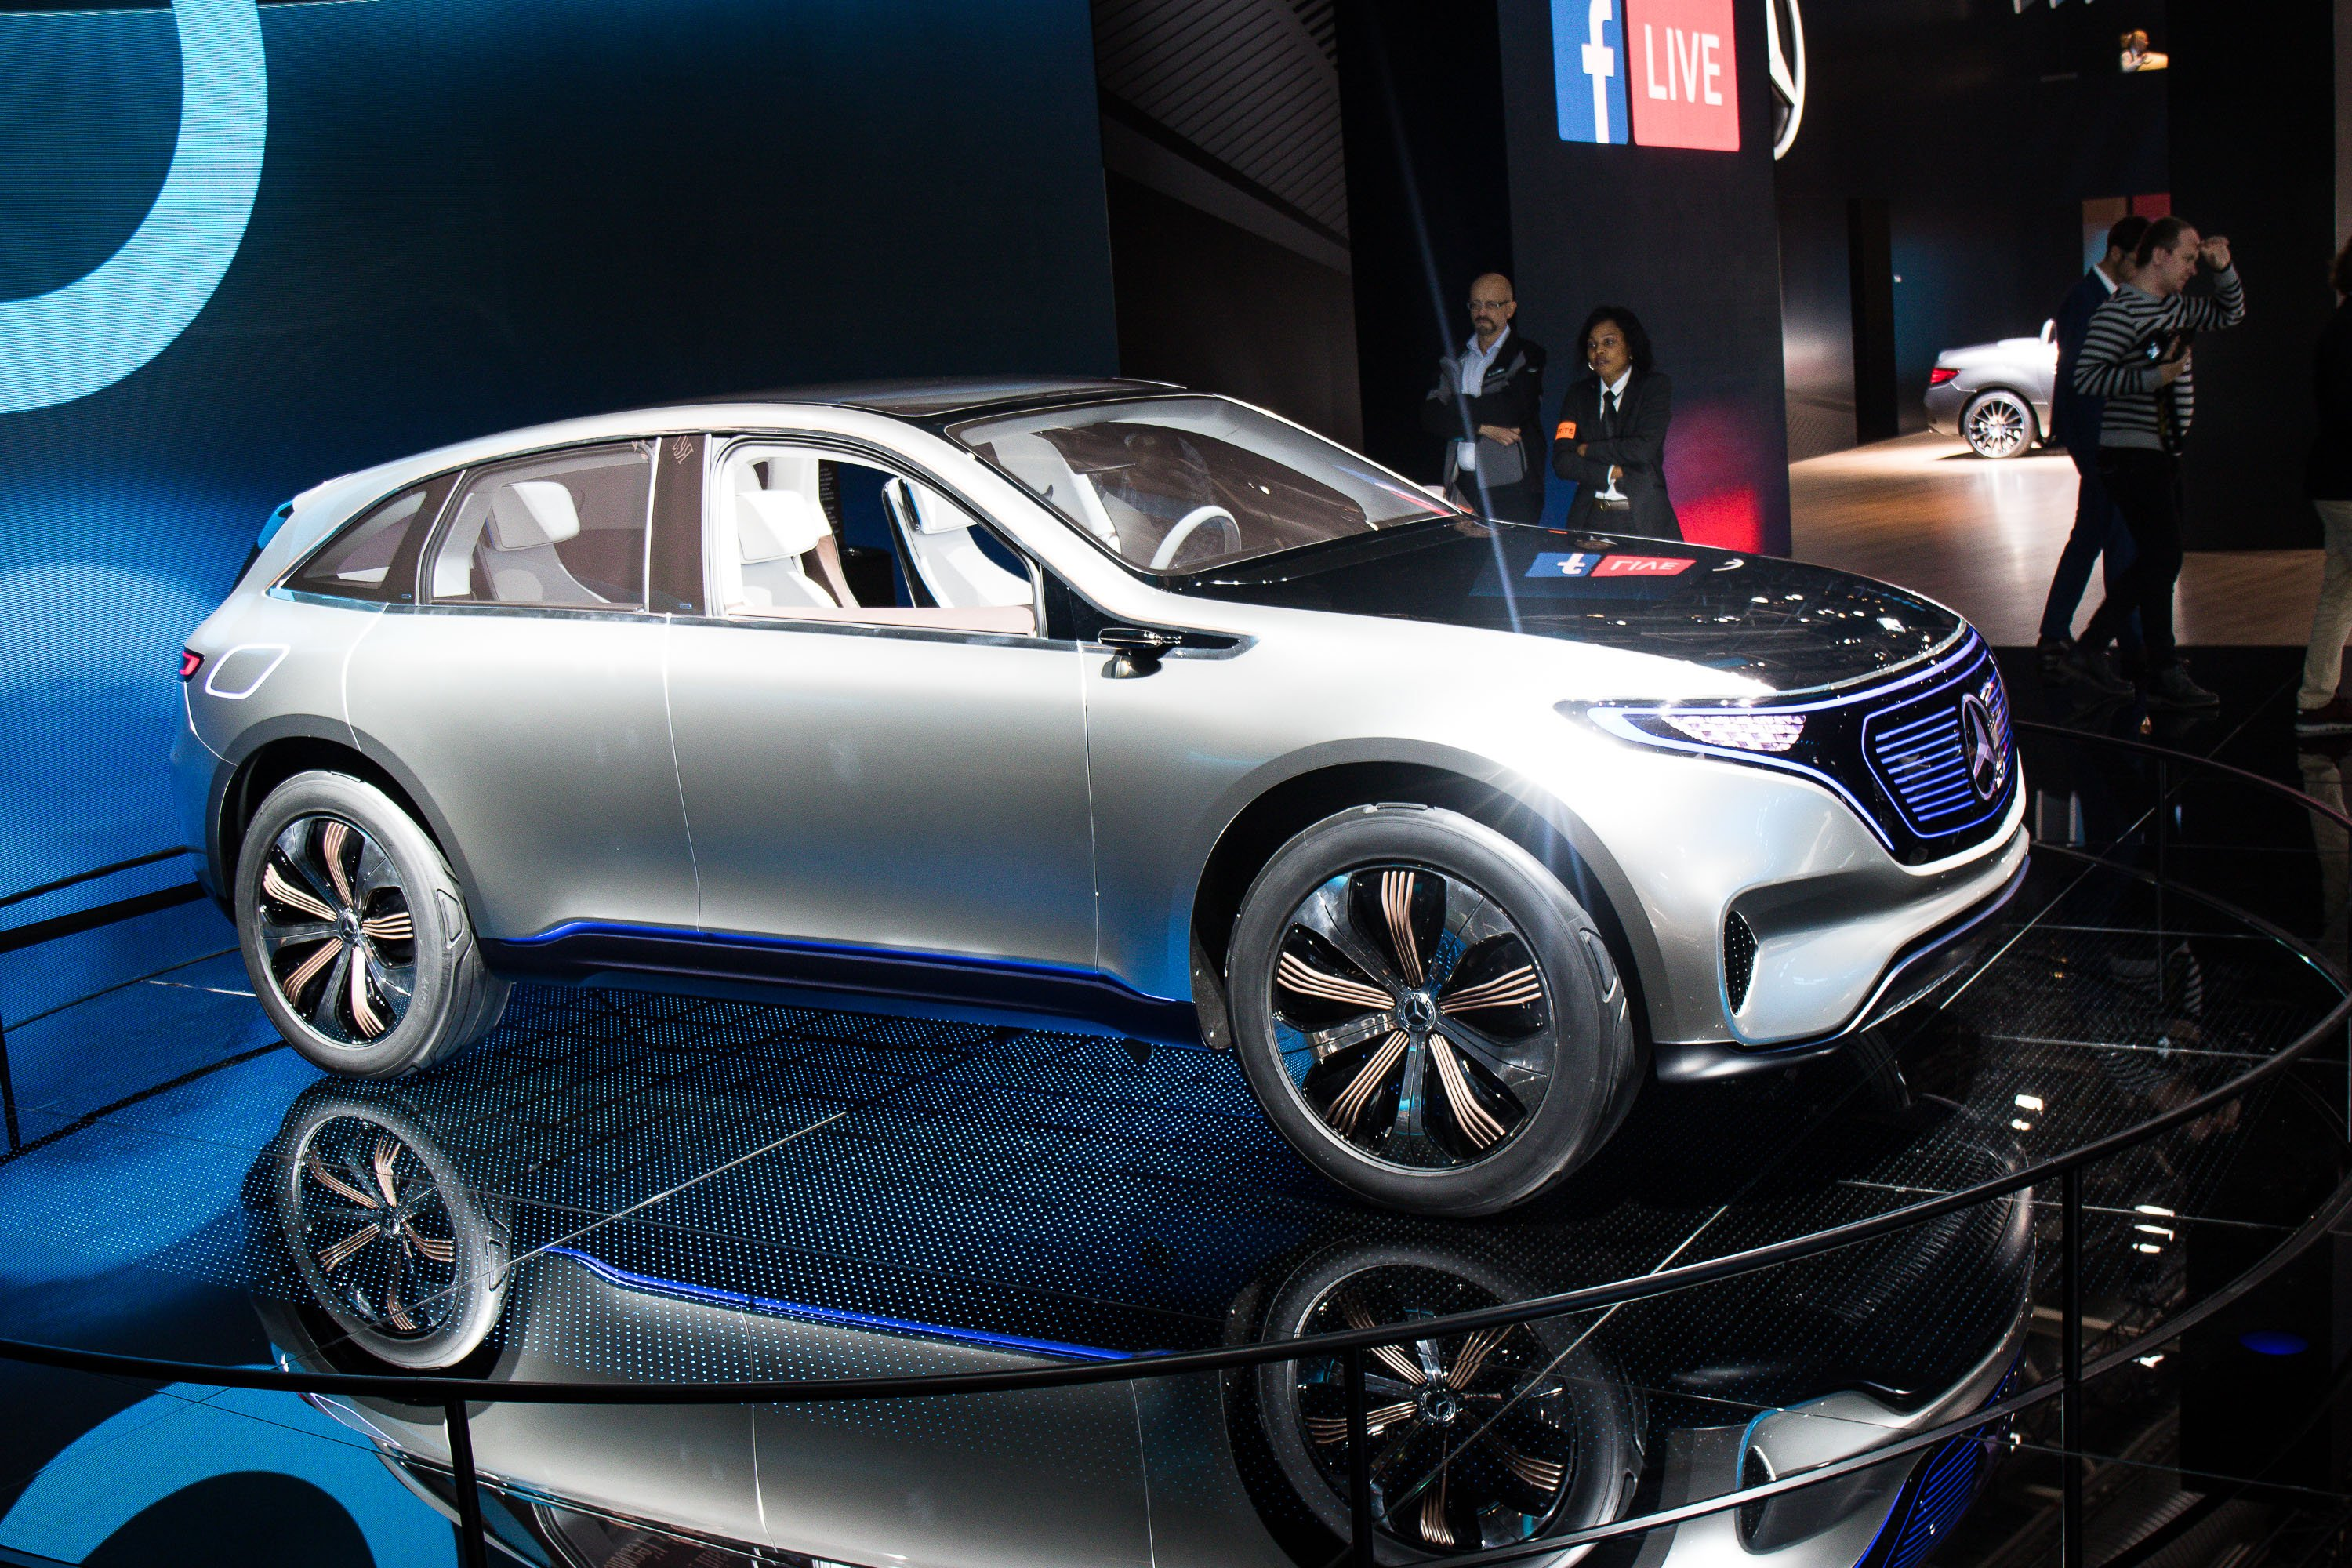 Marvelous Mercedes EQ Electric SUV Will Launch In Australia By 2020